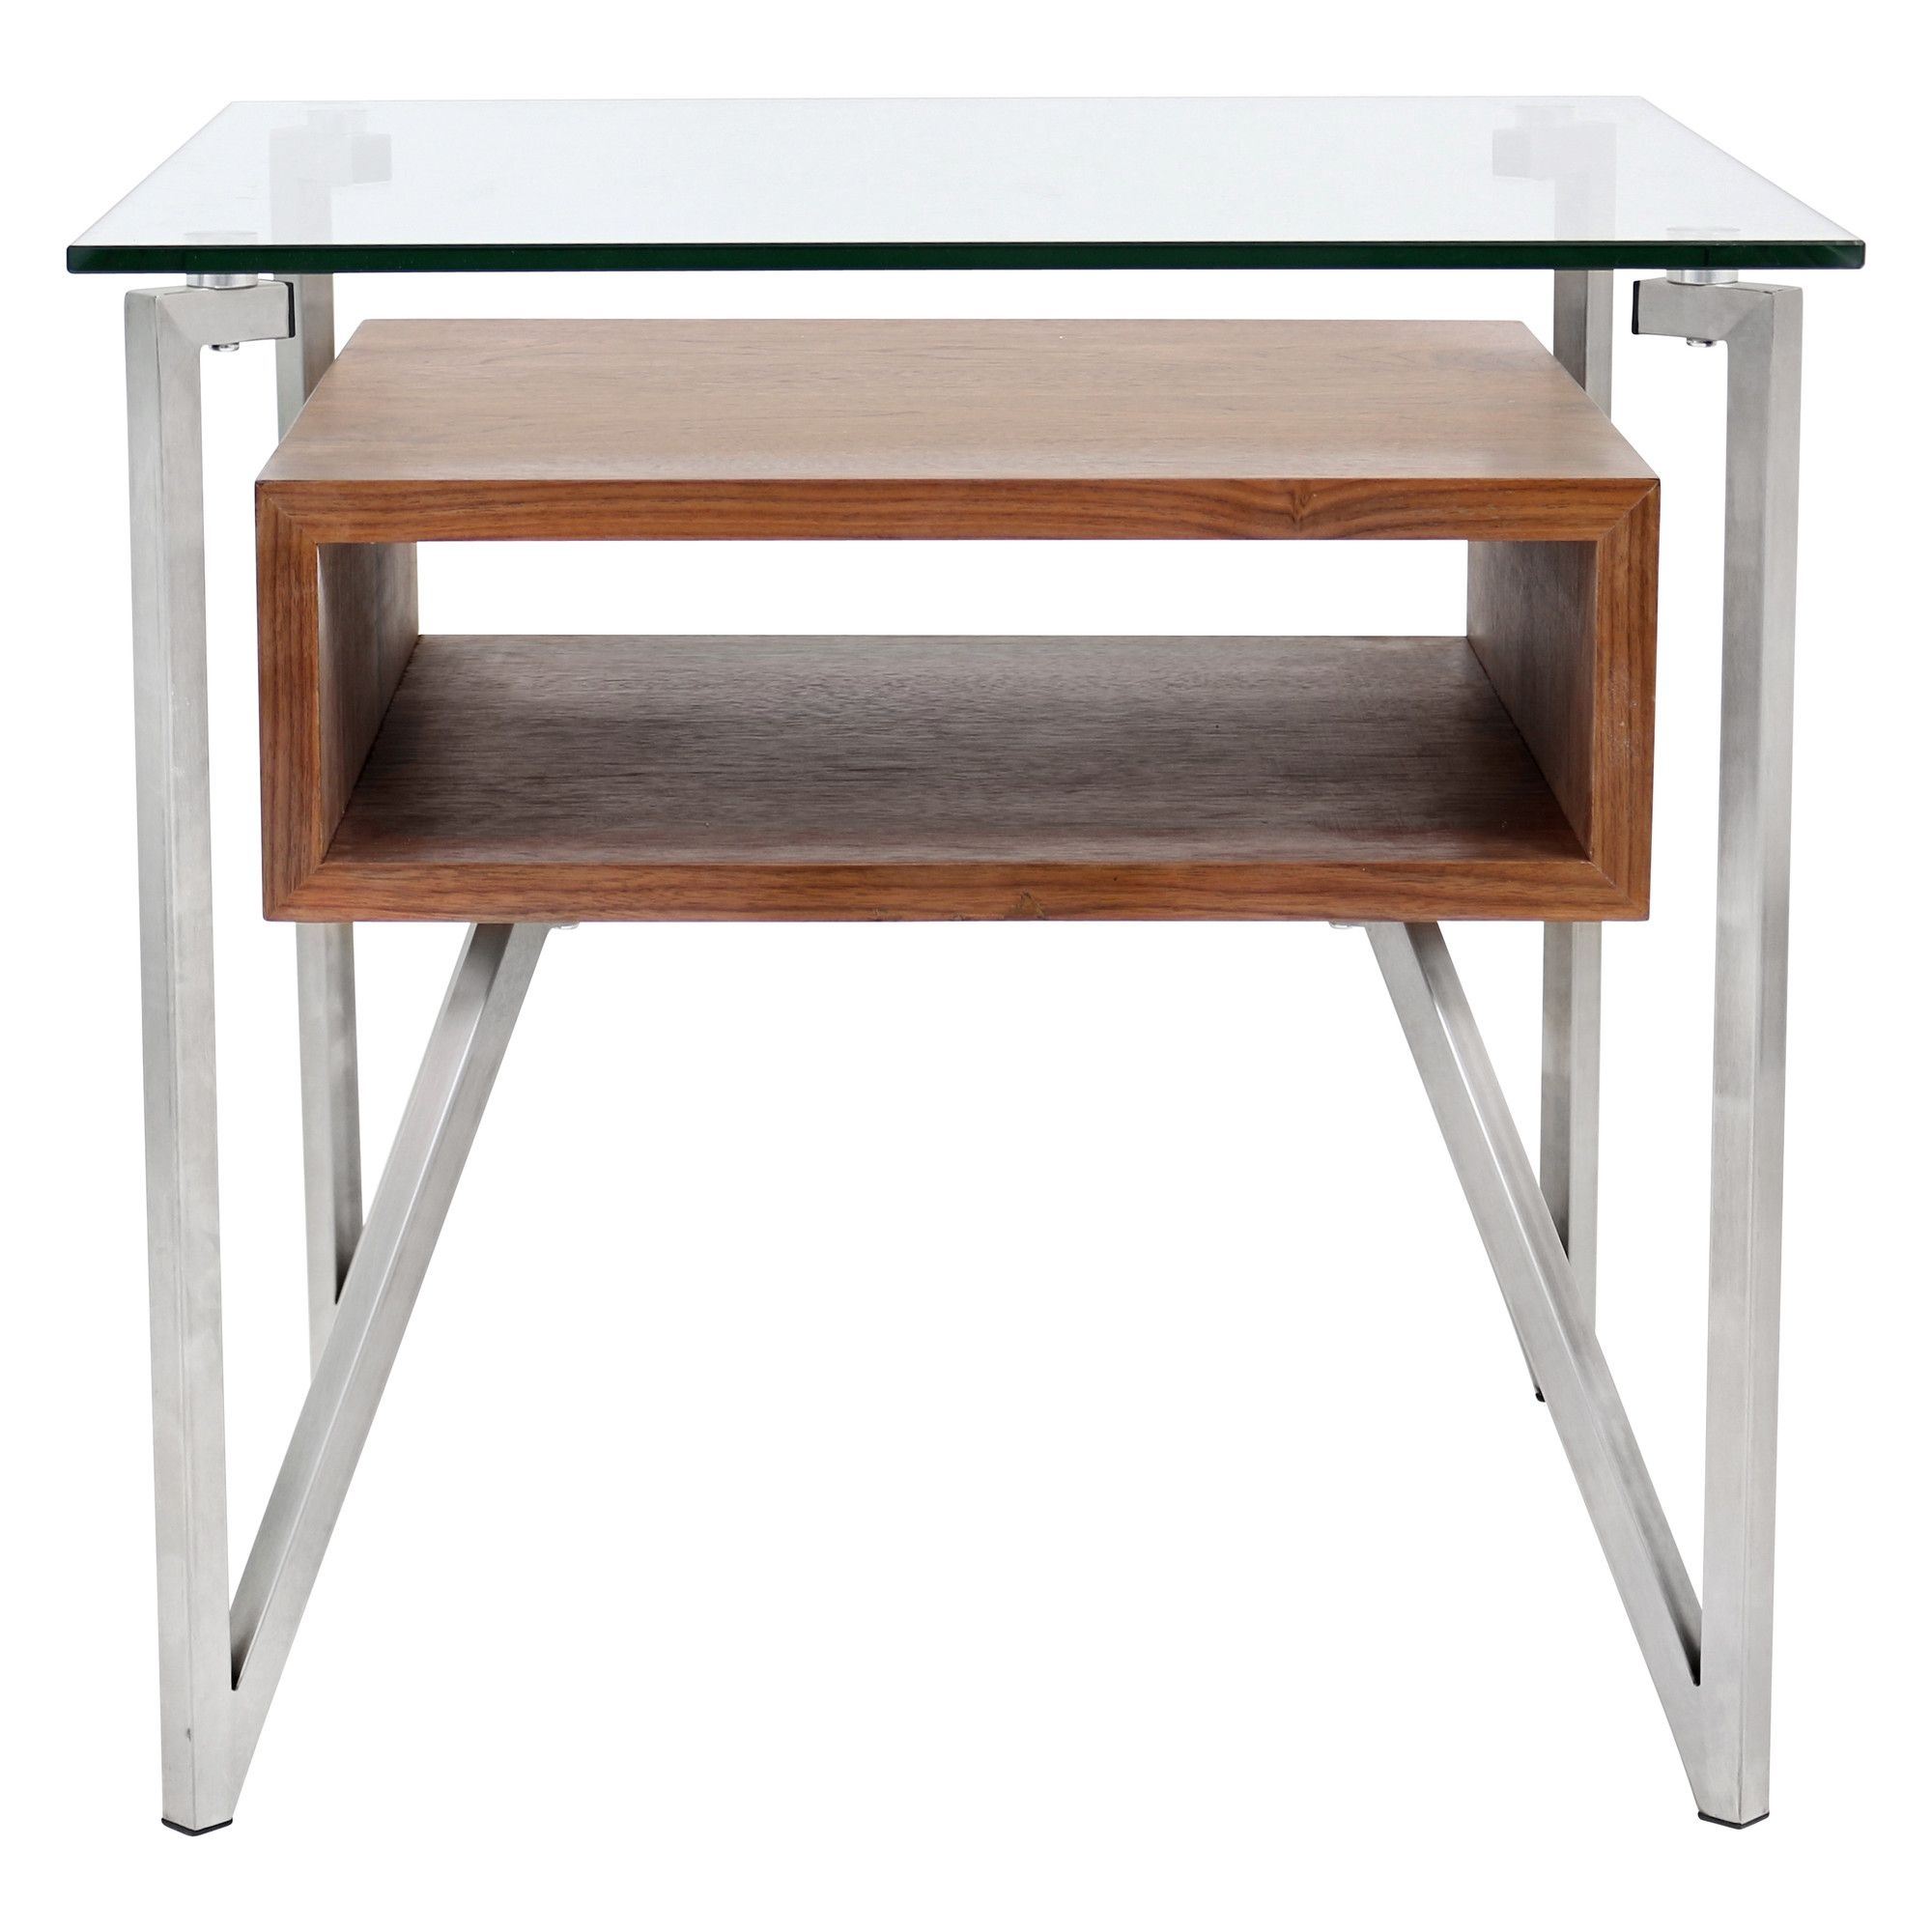 Shop Modern Walnut Malmo End Table and other modern and contemporary home and office furniture Browse our selection of End Tables from Zuri Furniture